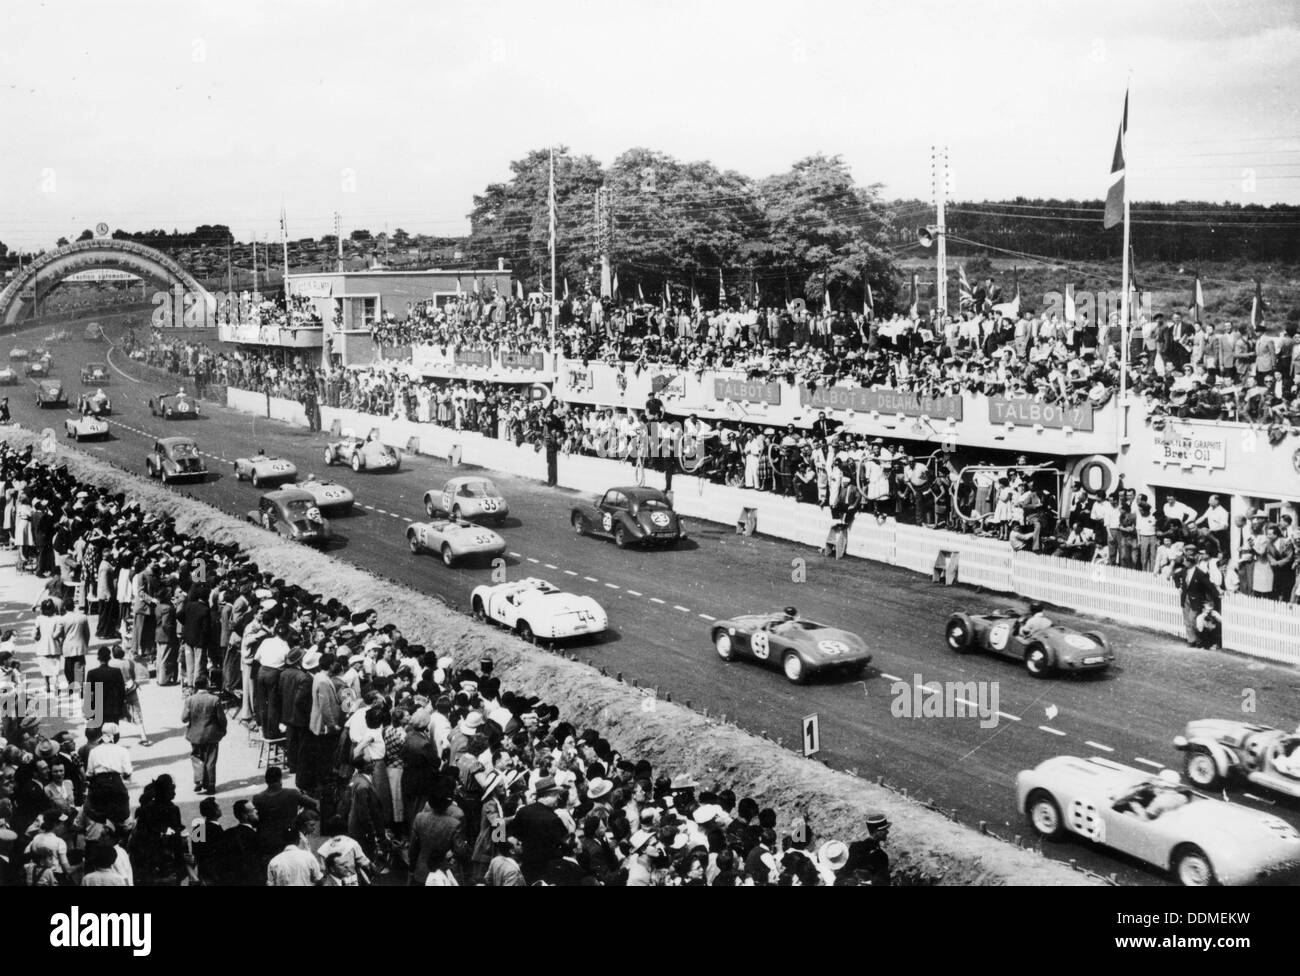 Start of the Le Mans 24 Hours, 1950. - Stock Image